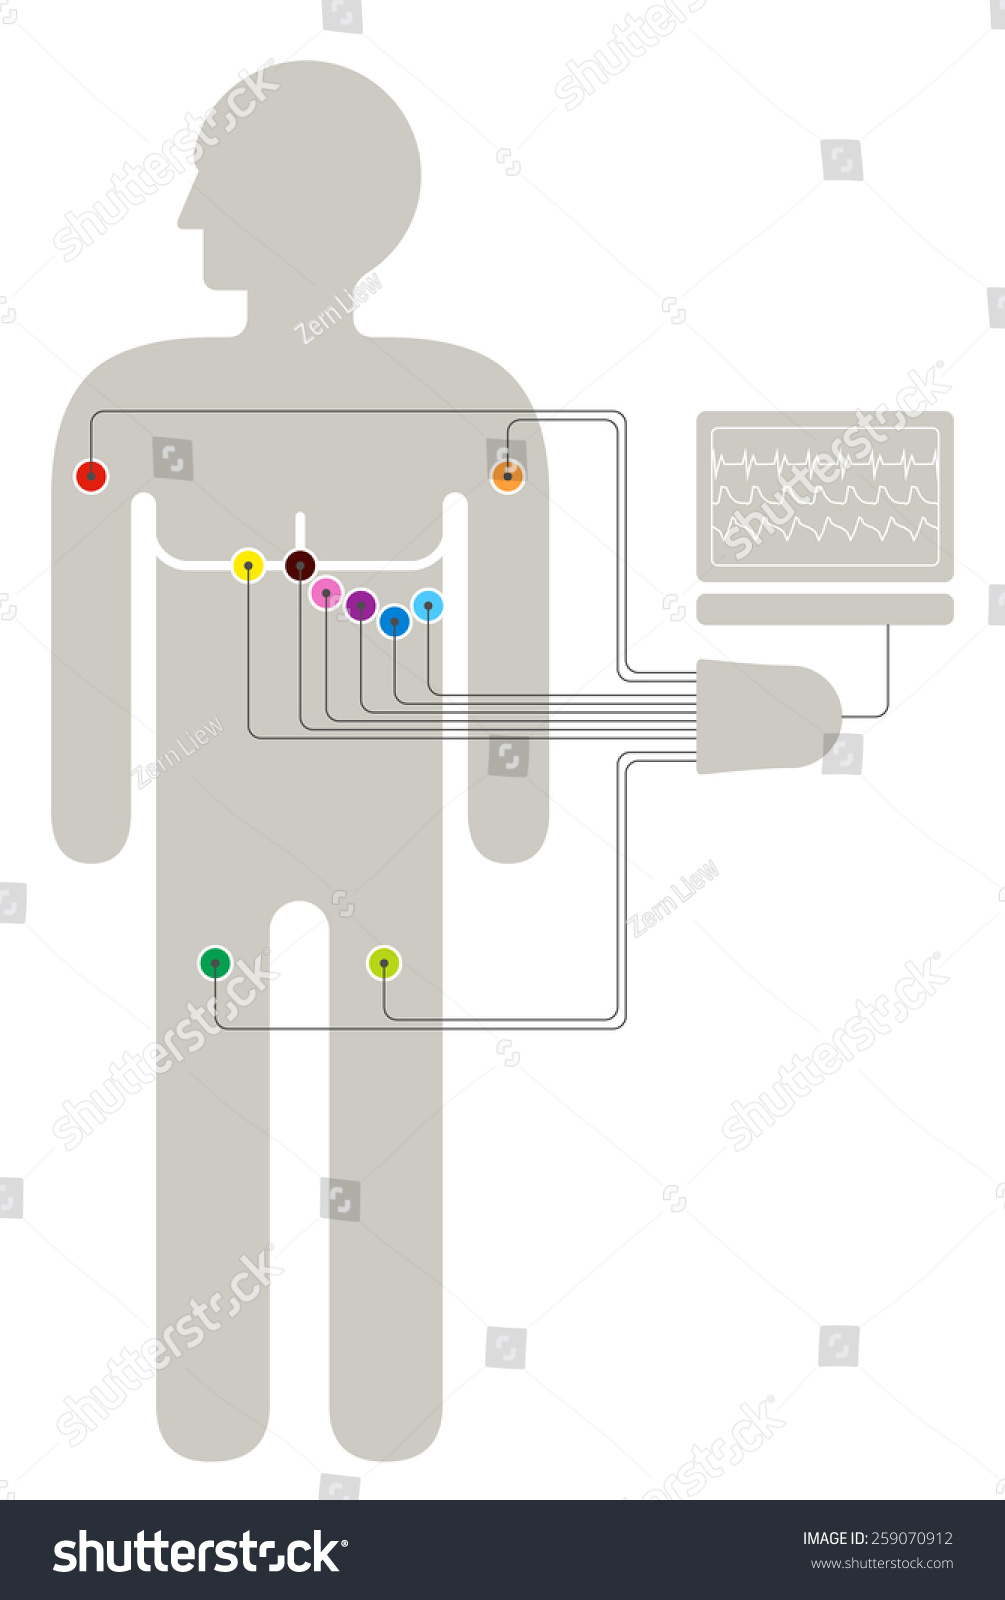 hight resolution of ecg wiring diagram showing 6 2 2 colour coded sensors connected to a